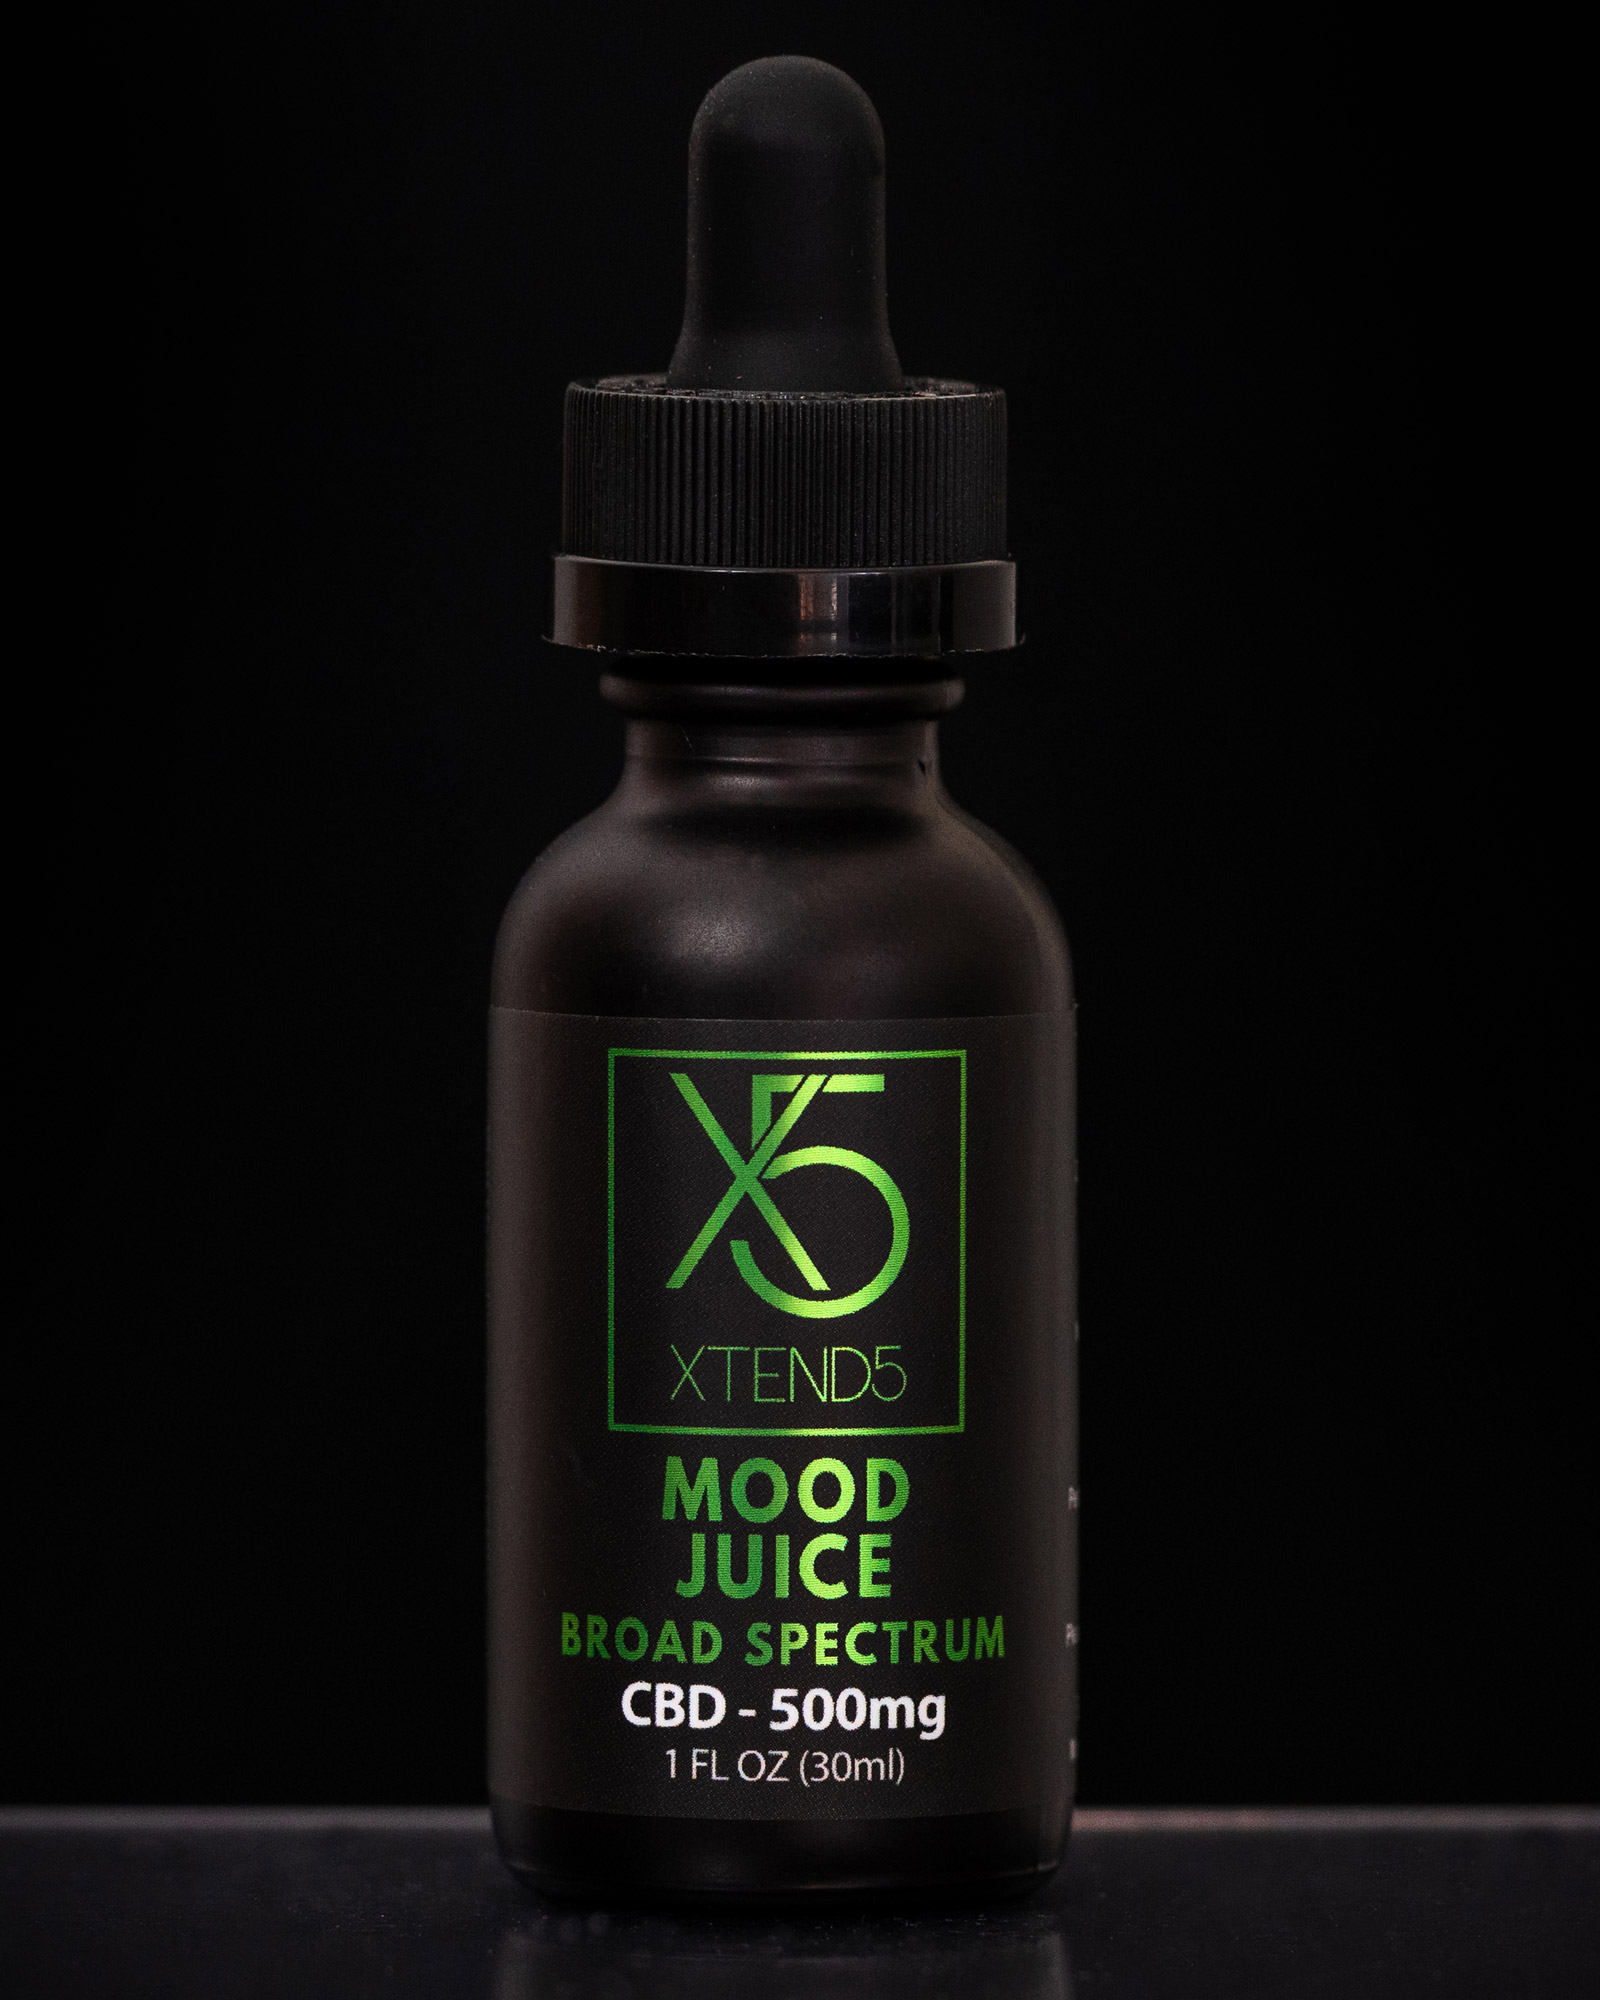 xtend5 mood juice 500mg - 500mg Broad Spectrum CBD Oil